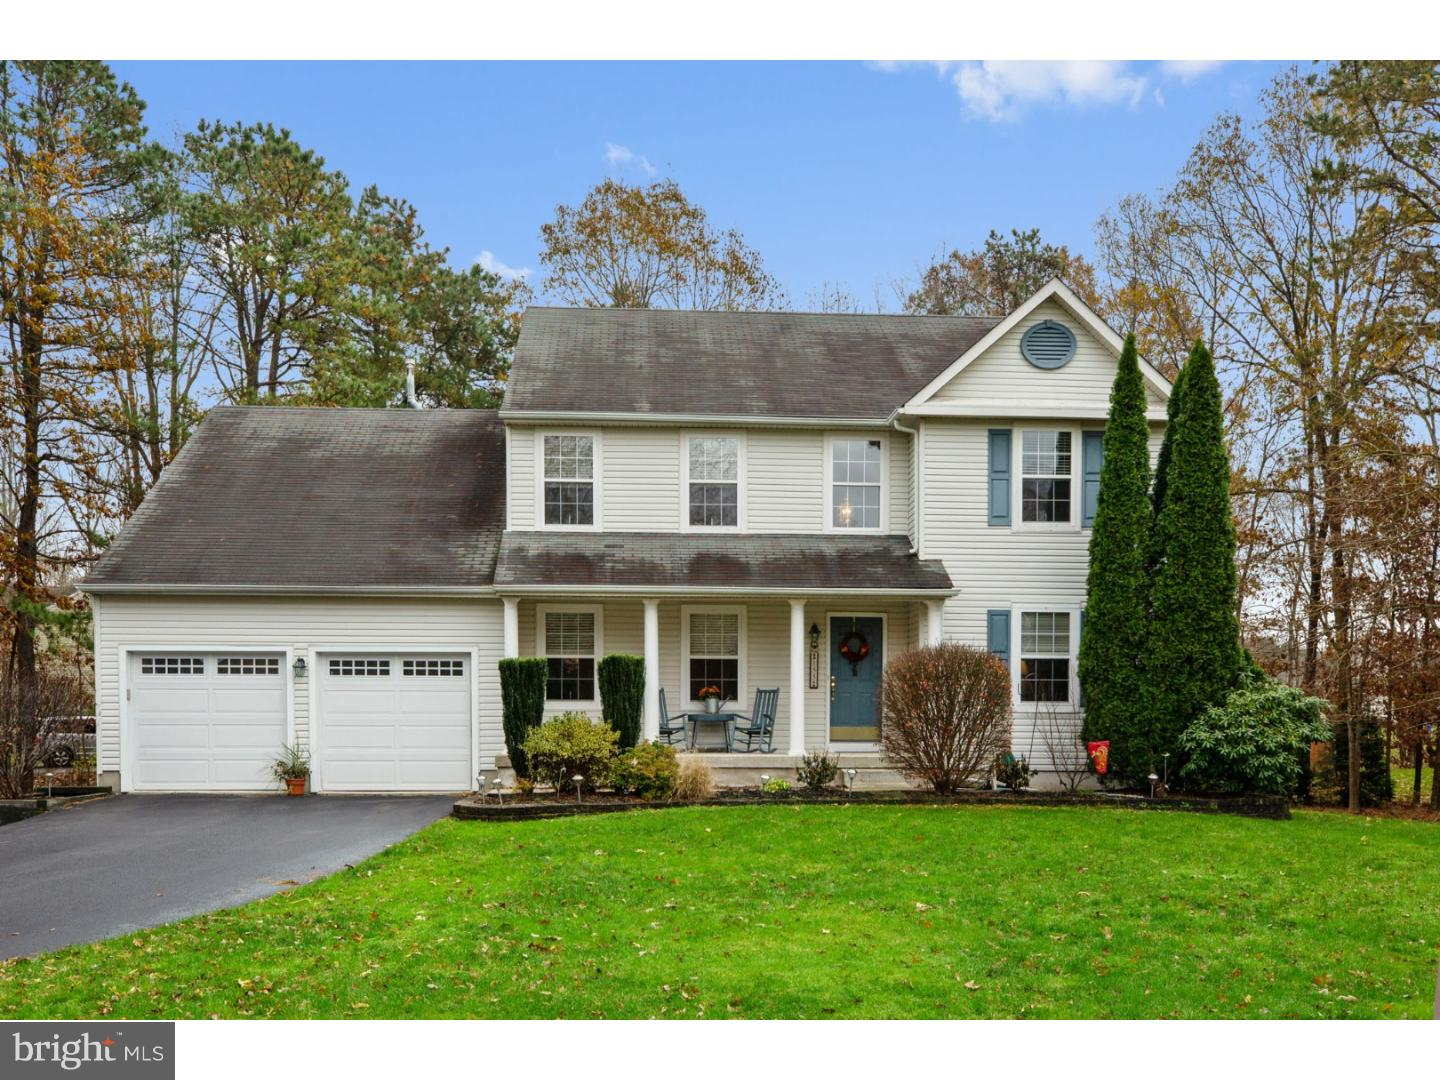 155 LACEY RAE DRIVE, FRANKLINVILLE, NJ 08322